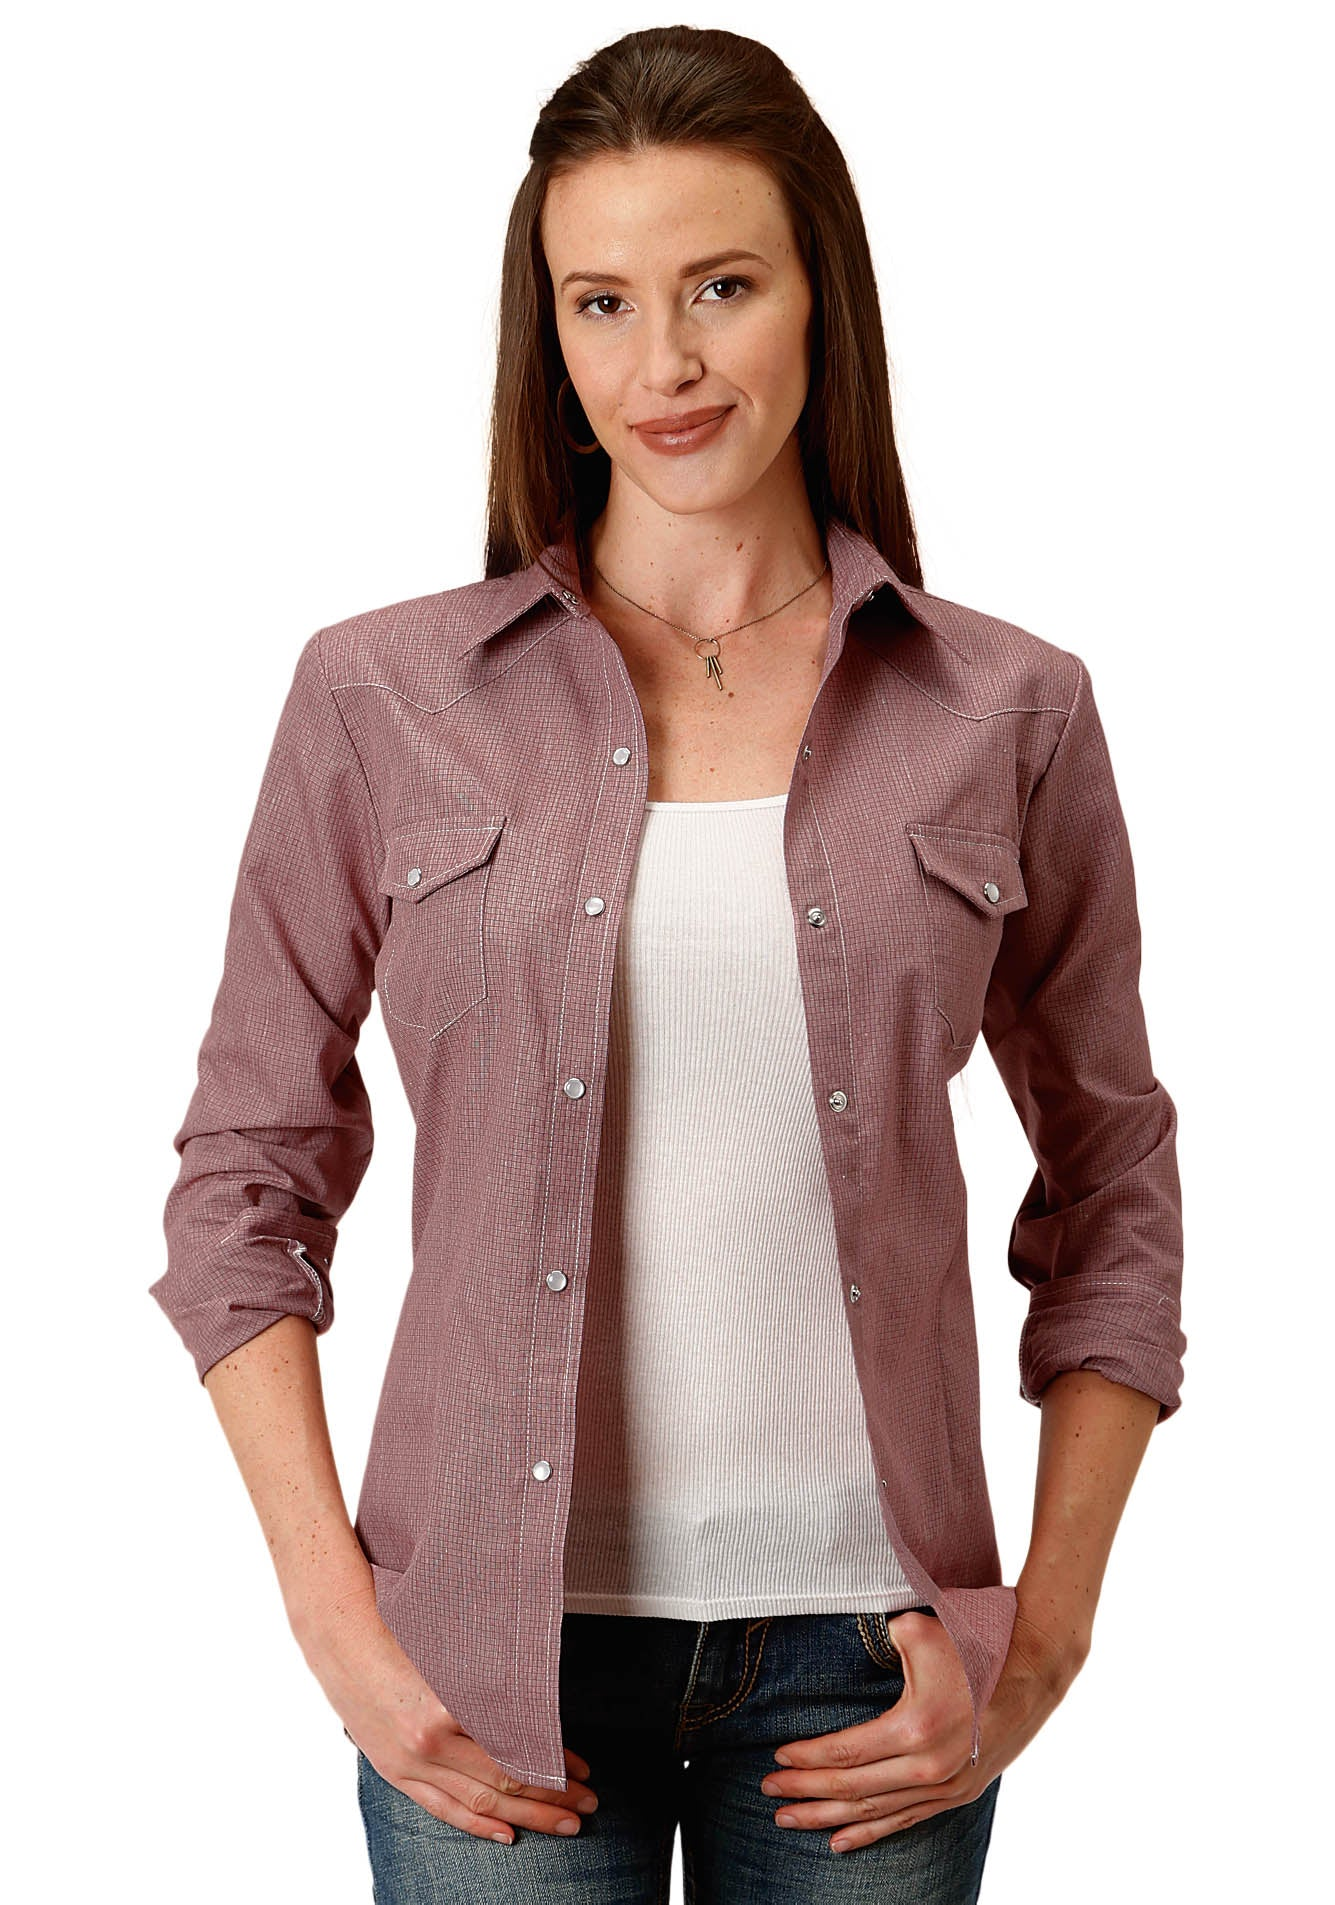 POLY COTTON WOMENS WINE 9892 WINE CROSSHATCH TONE ON TONE TONE ON TONE SOLID